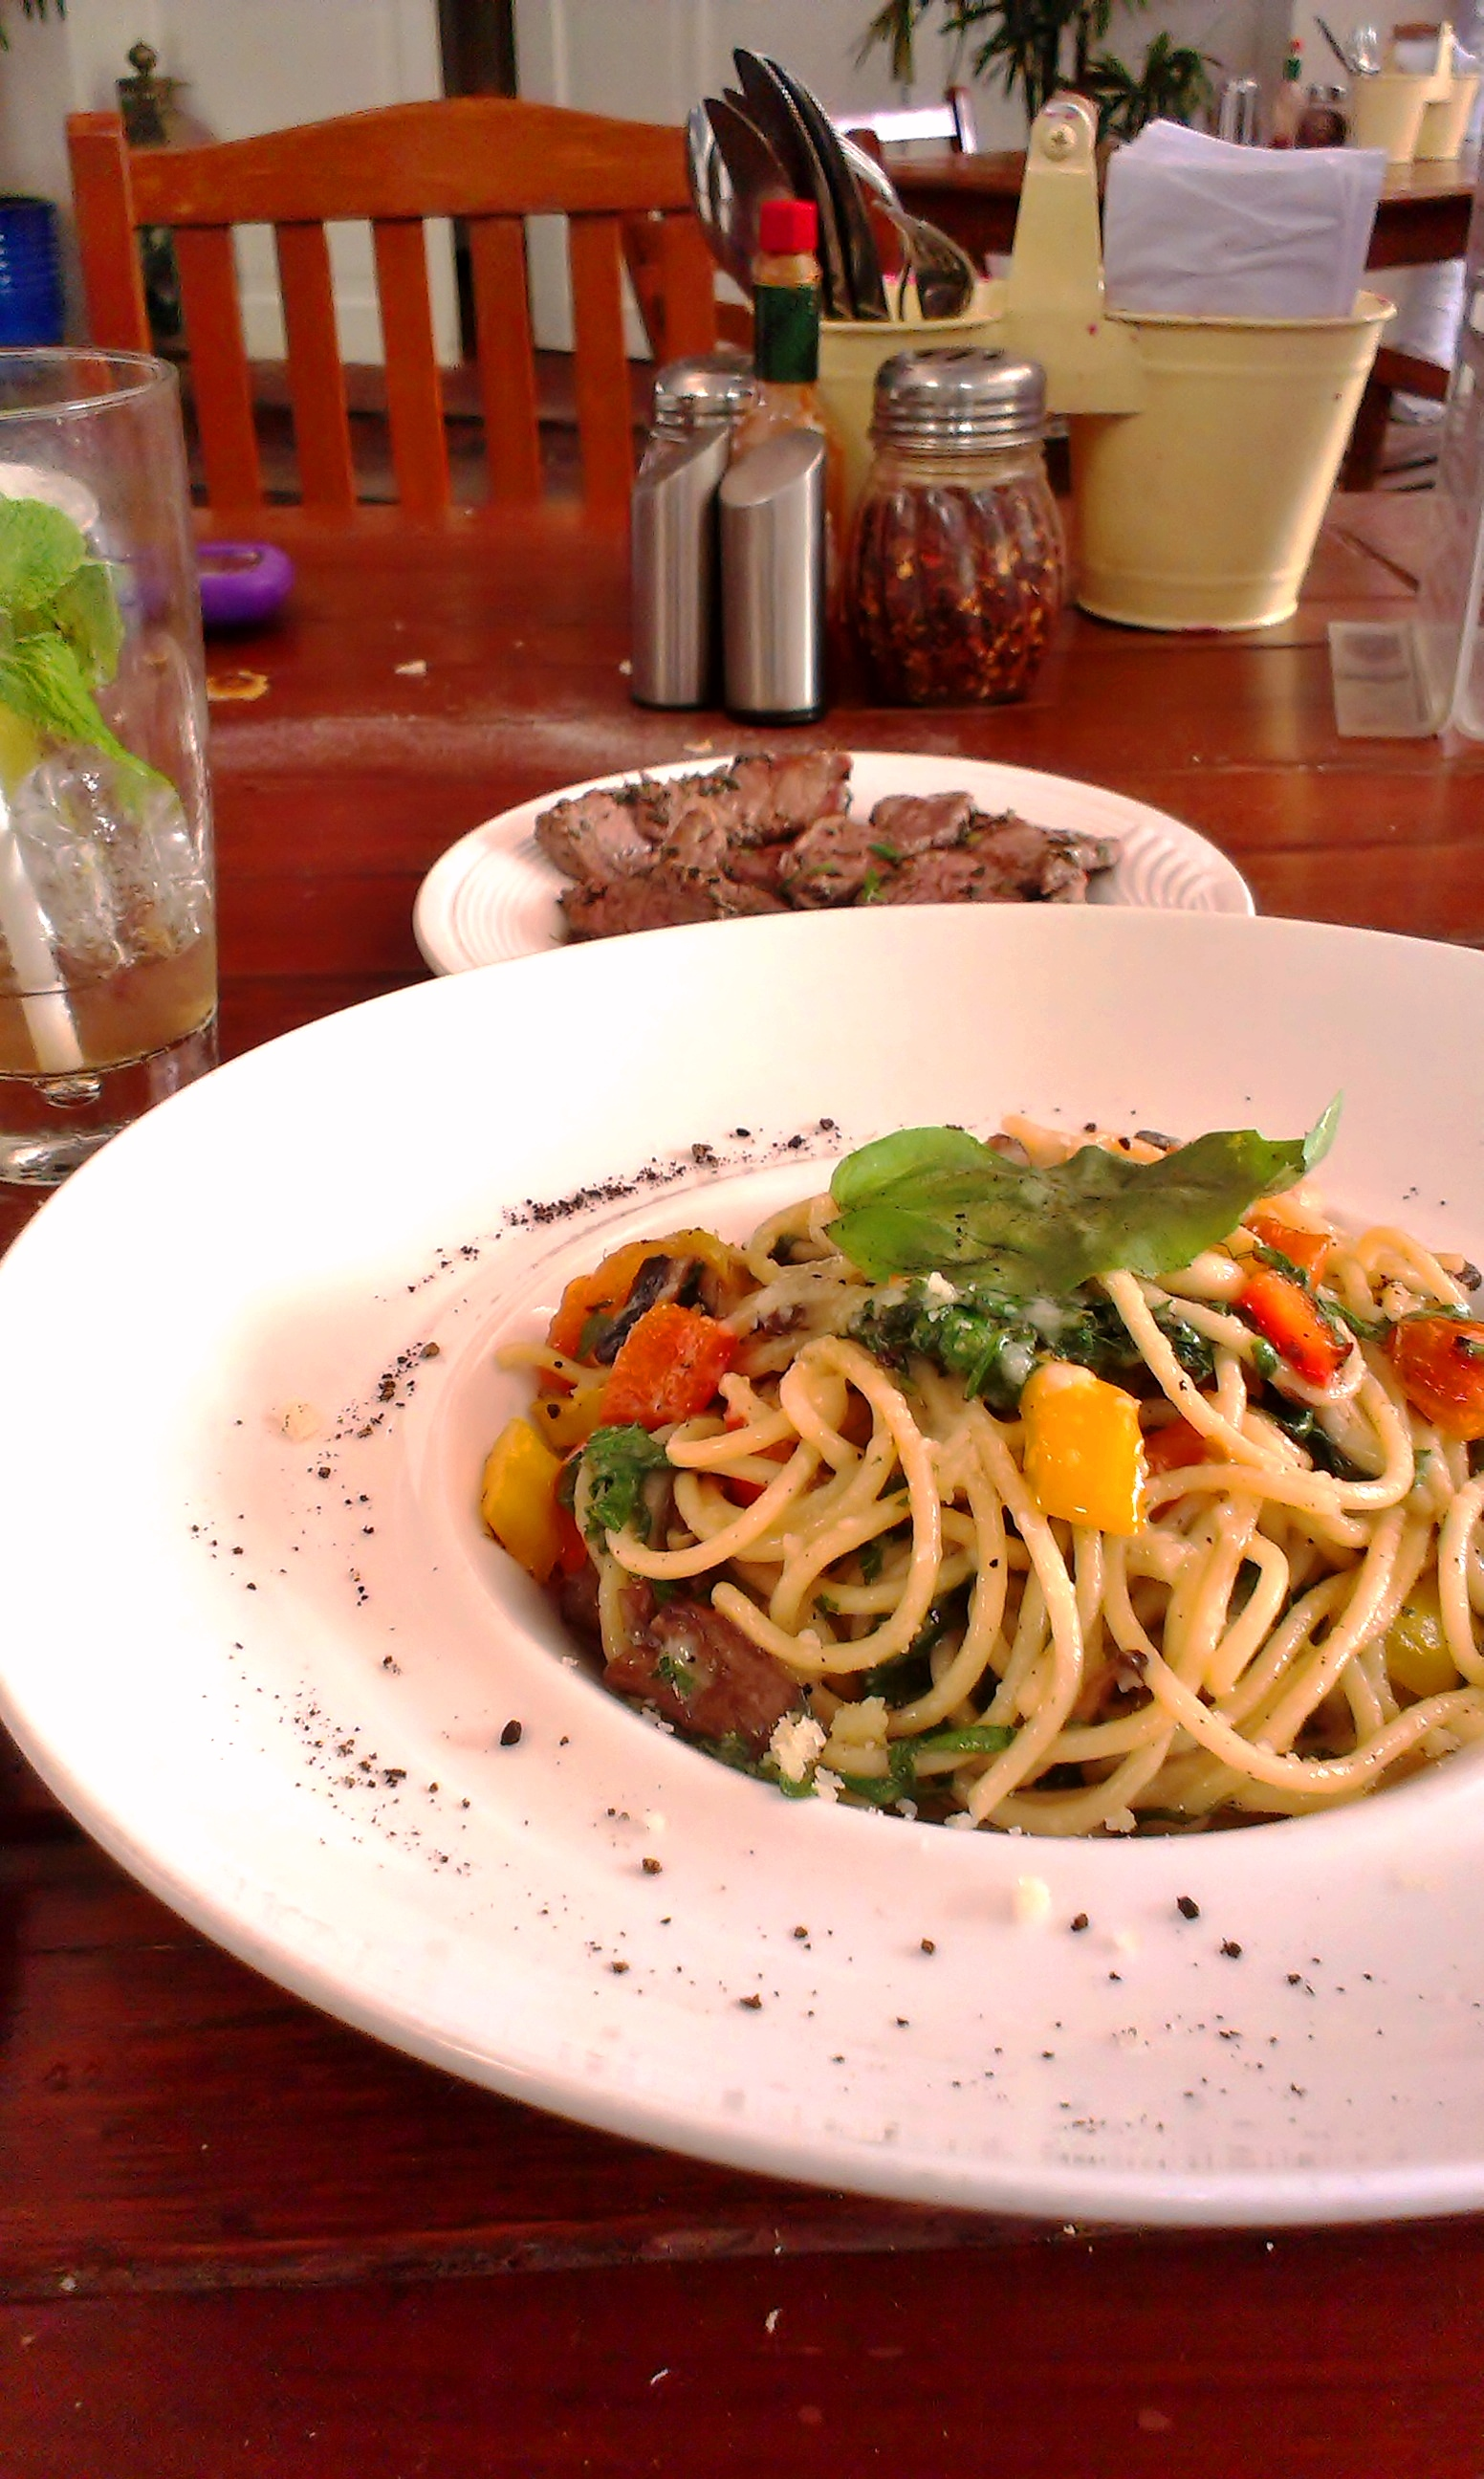 Spaghetti aglio e olio accompanied with a side of steak strips